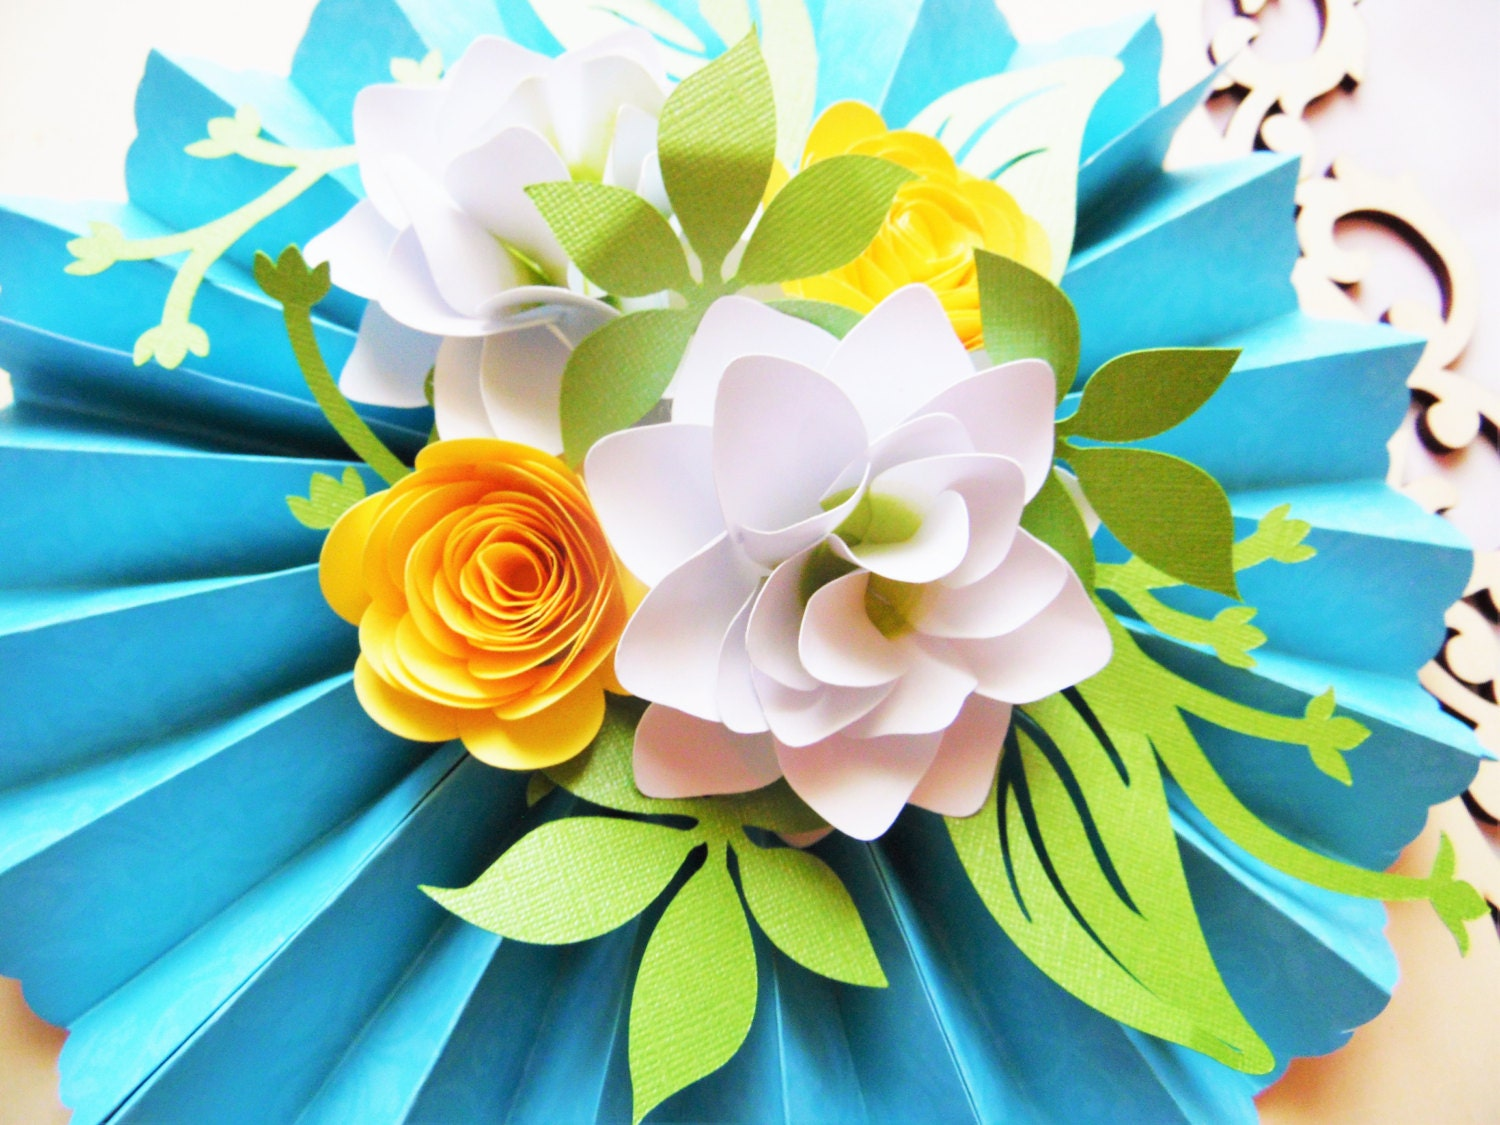 Diy rosette medallions with paper flowers diy paper flower zoom dhlflorist Choice Image